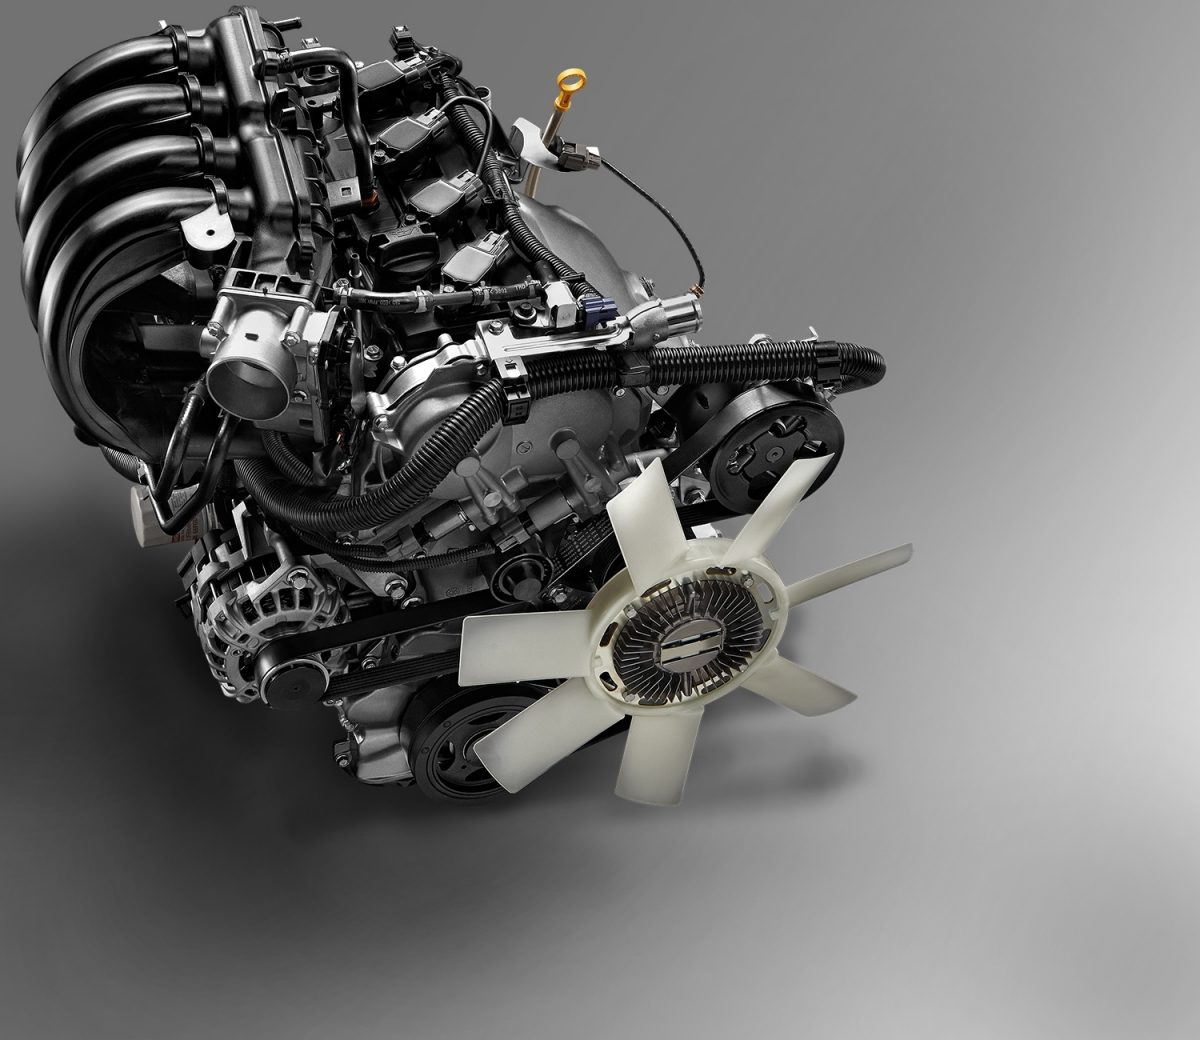 2021 Nissan X-Terra Engine